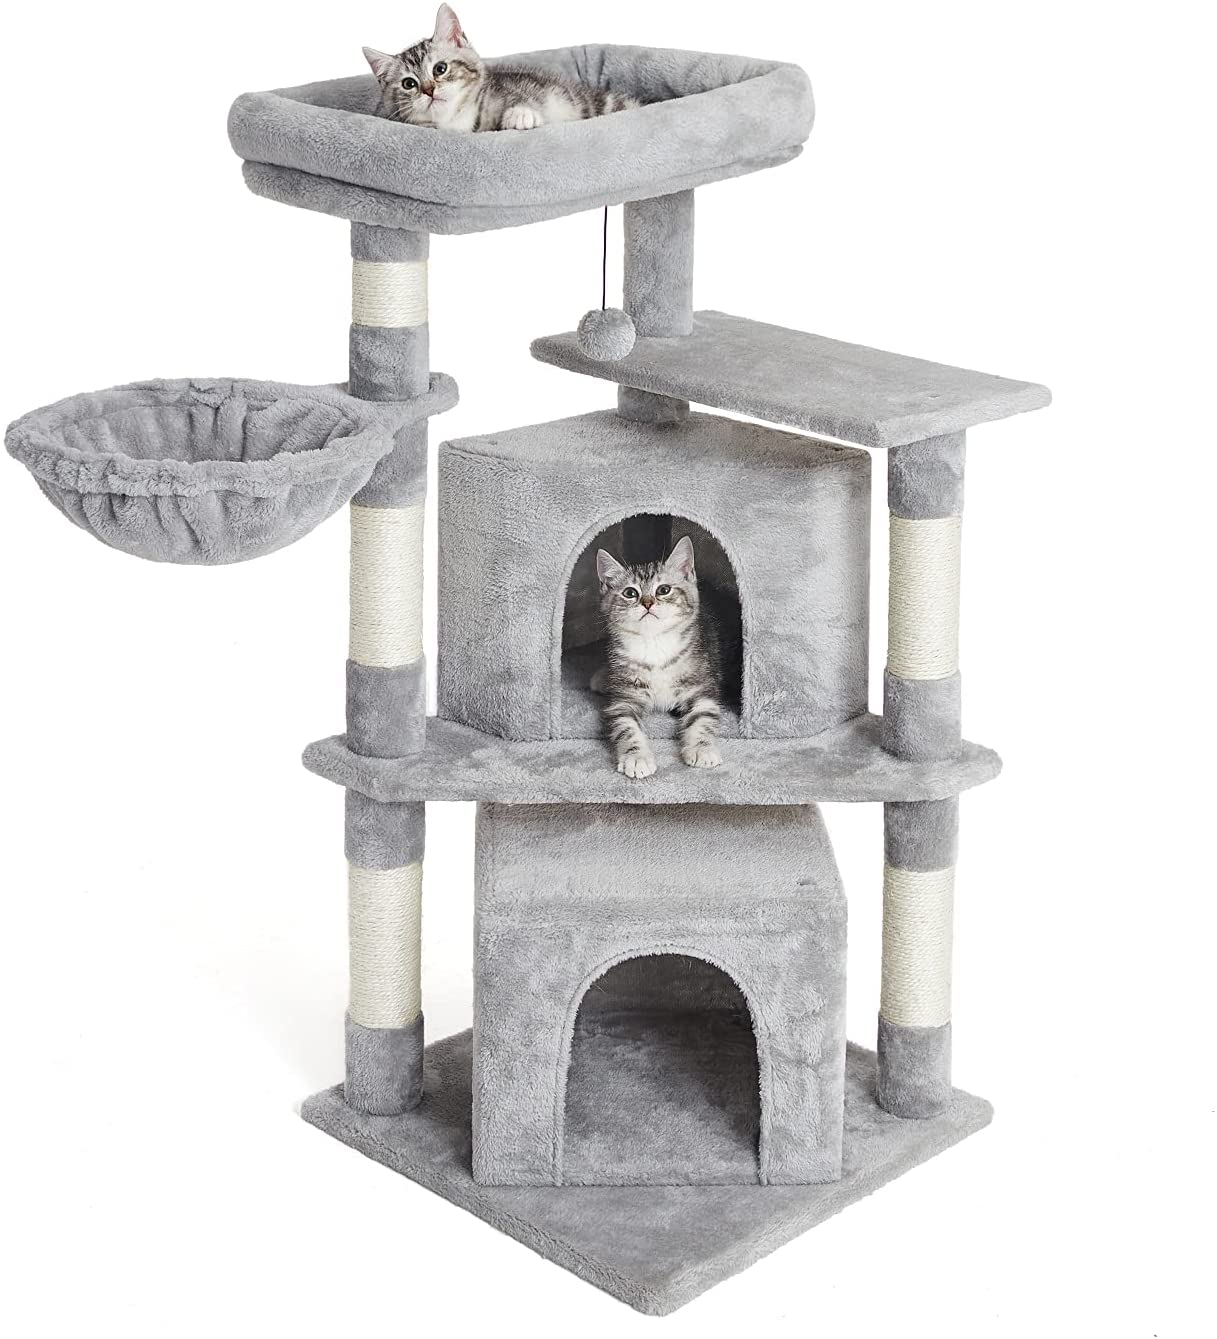 Kilodor Cat Tree with Sisal Scratching Post, Luxury Condo, Hummock,Cat Tower Climber Furniture,Kitten Playhouse